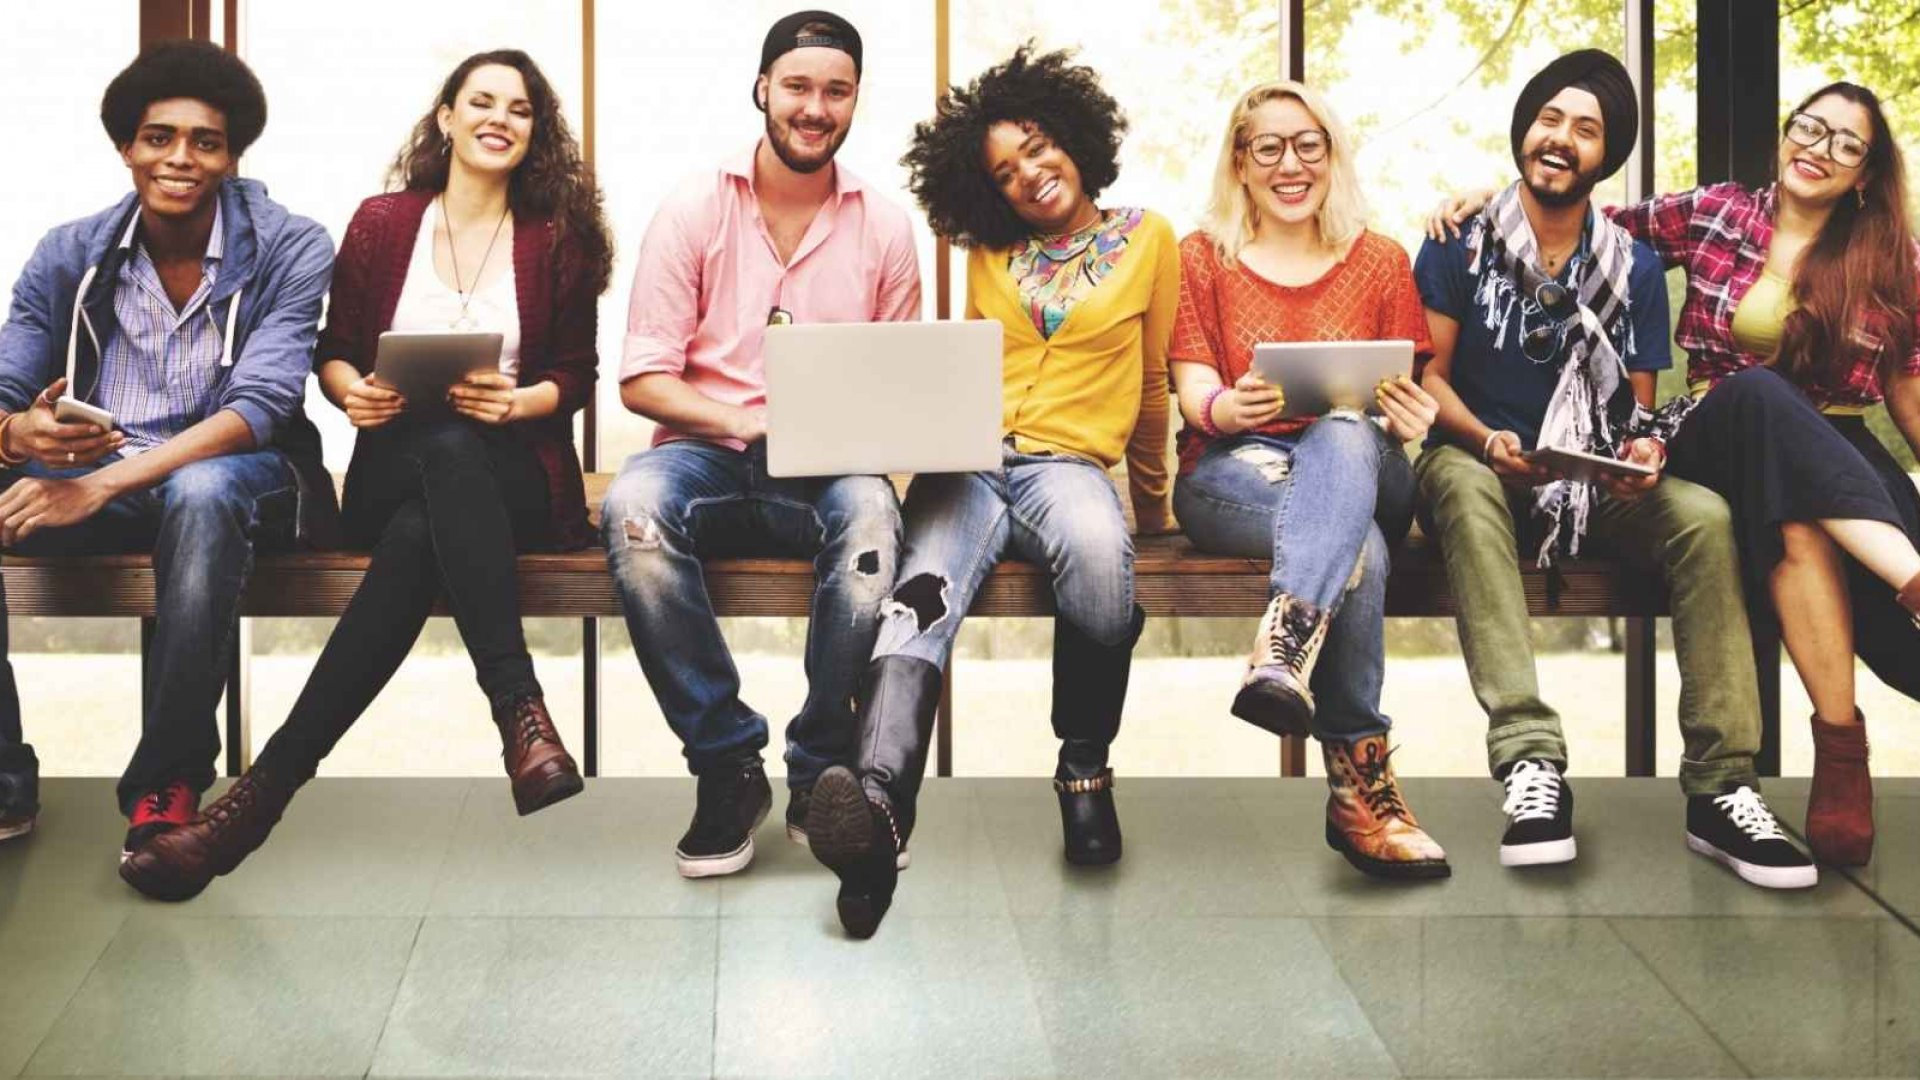 These Facts About the Millennial Work Force Will Shock You. Here Are 2 Takeaways